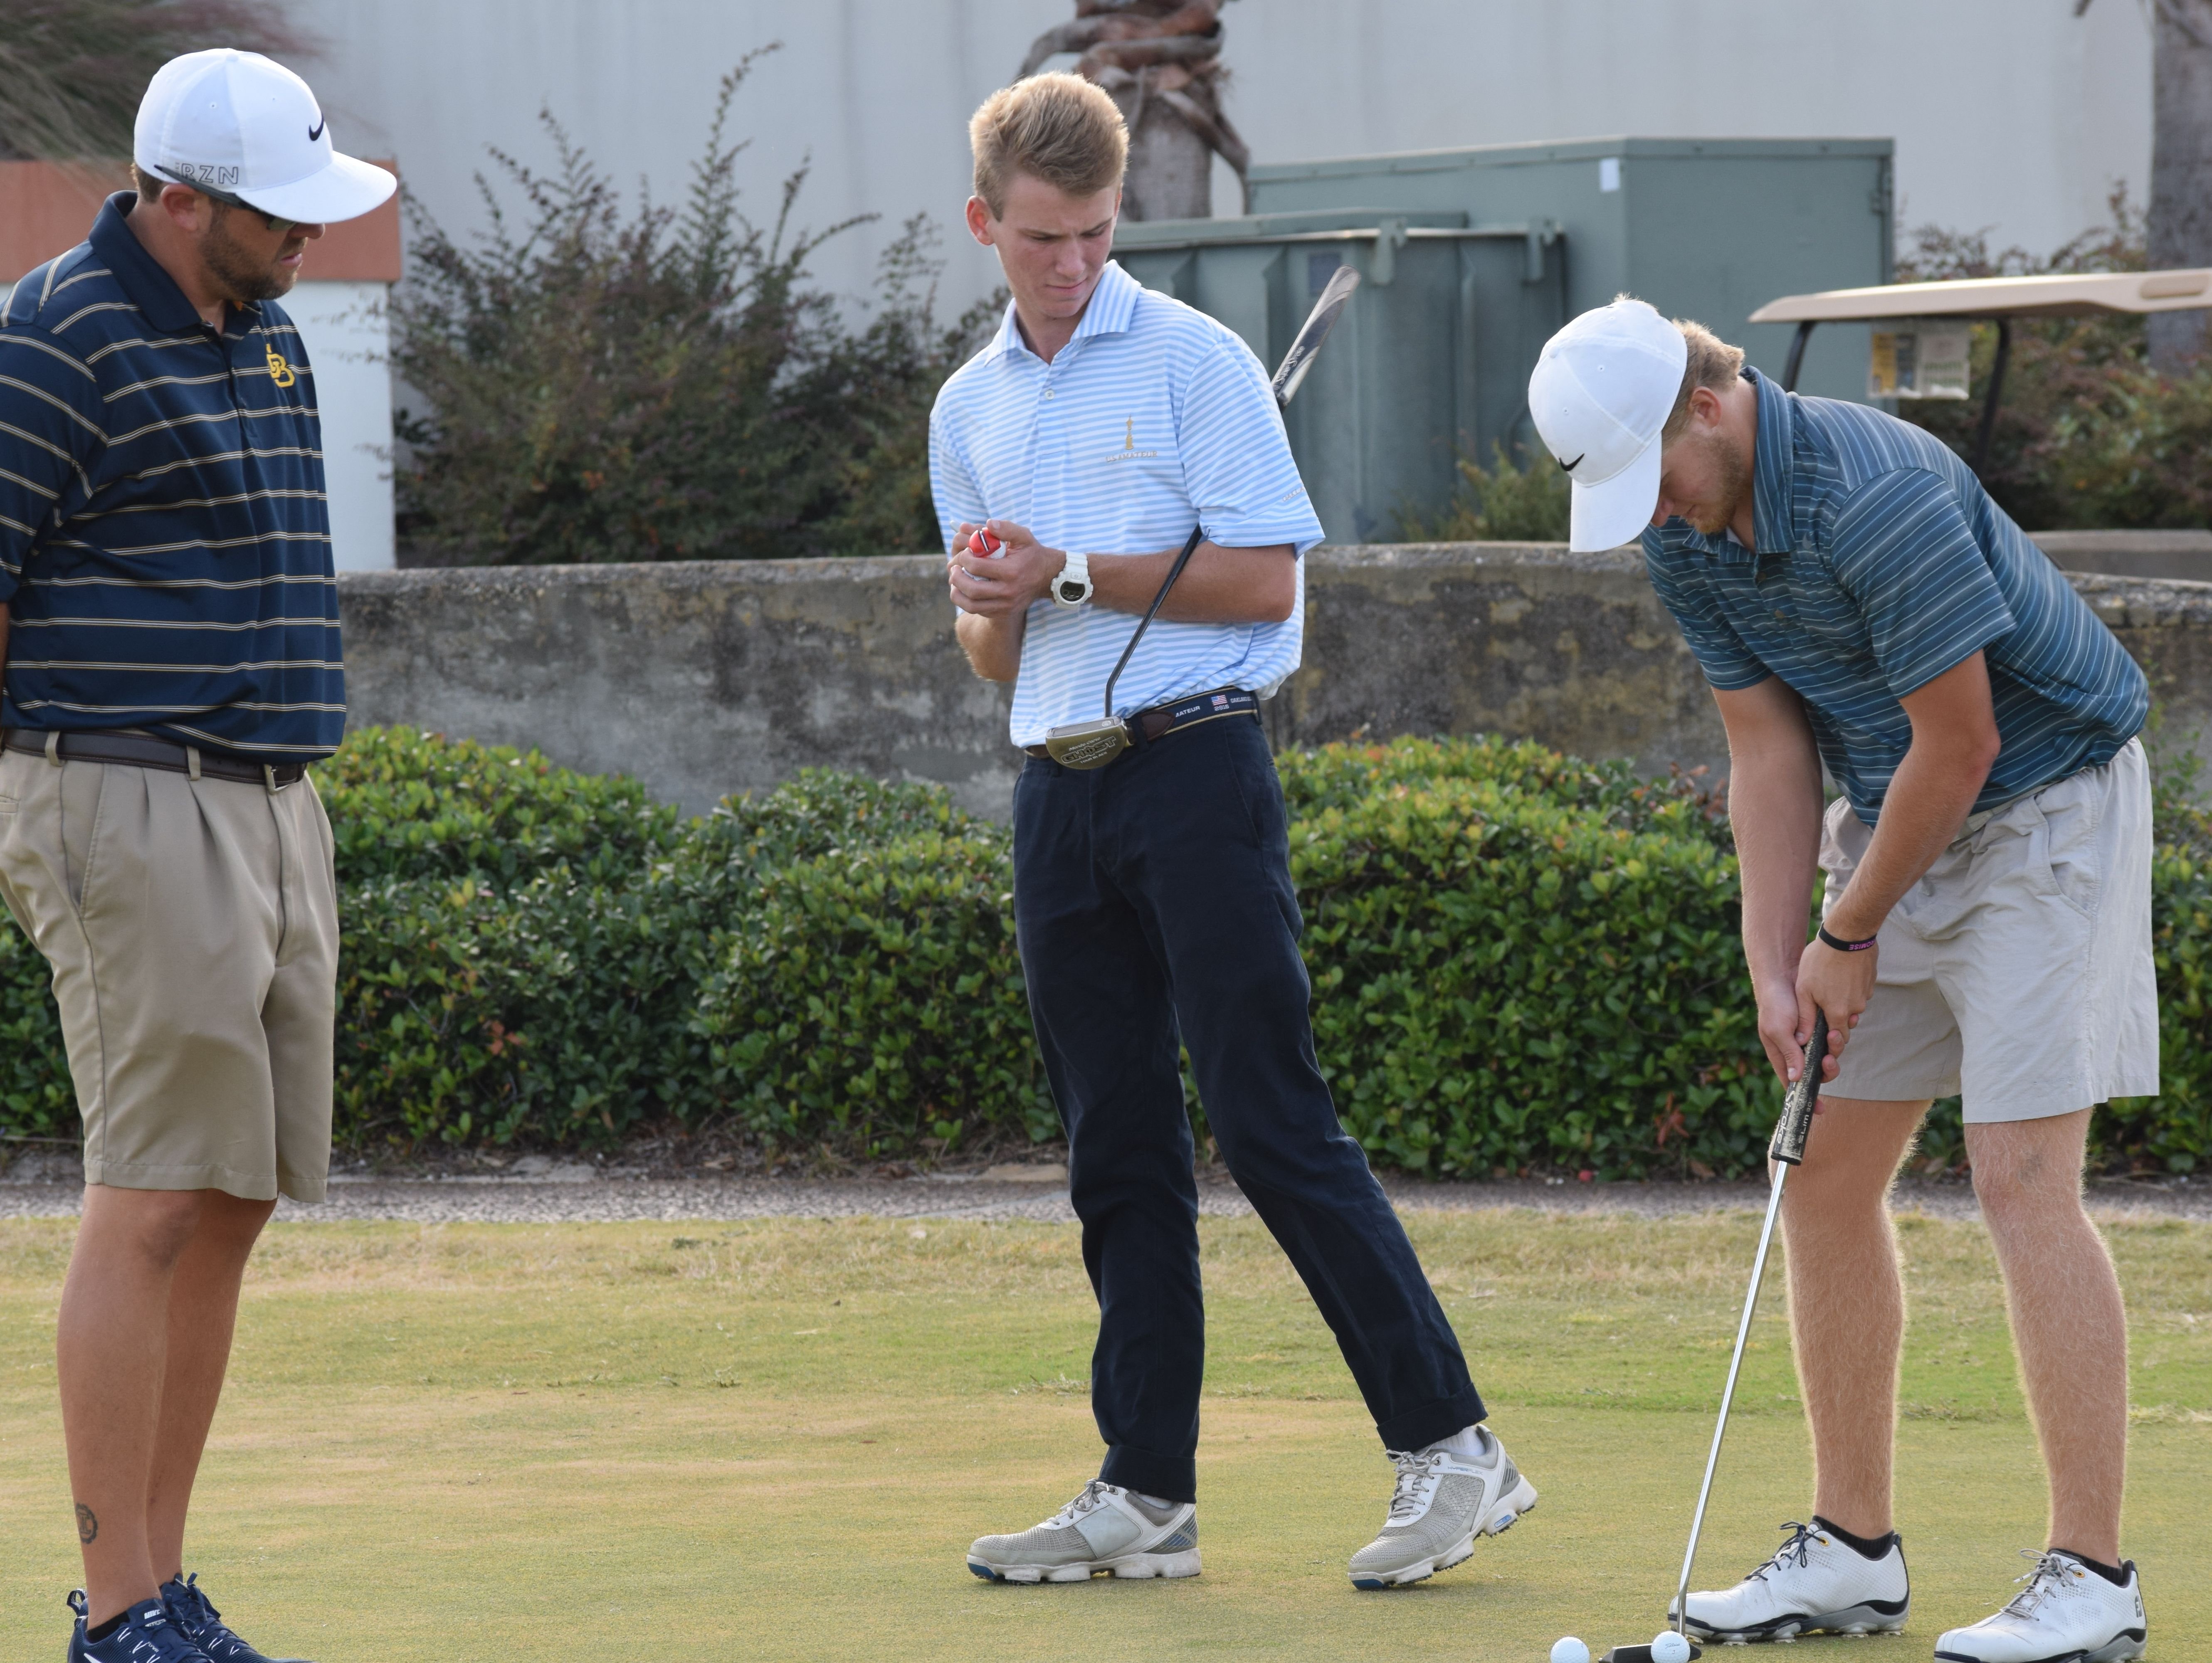 Brian Richards (center) and RJ Phillips (right) helped the Gulf Breeze High boys golf team to a strong start in Tuesday's first round of the Class 2A State Tournament.